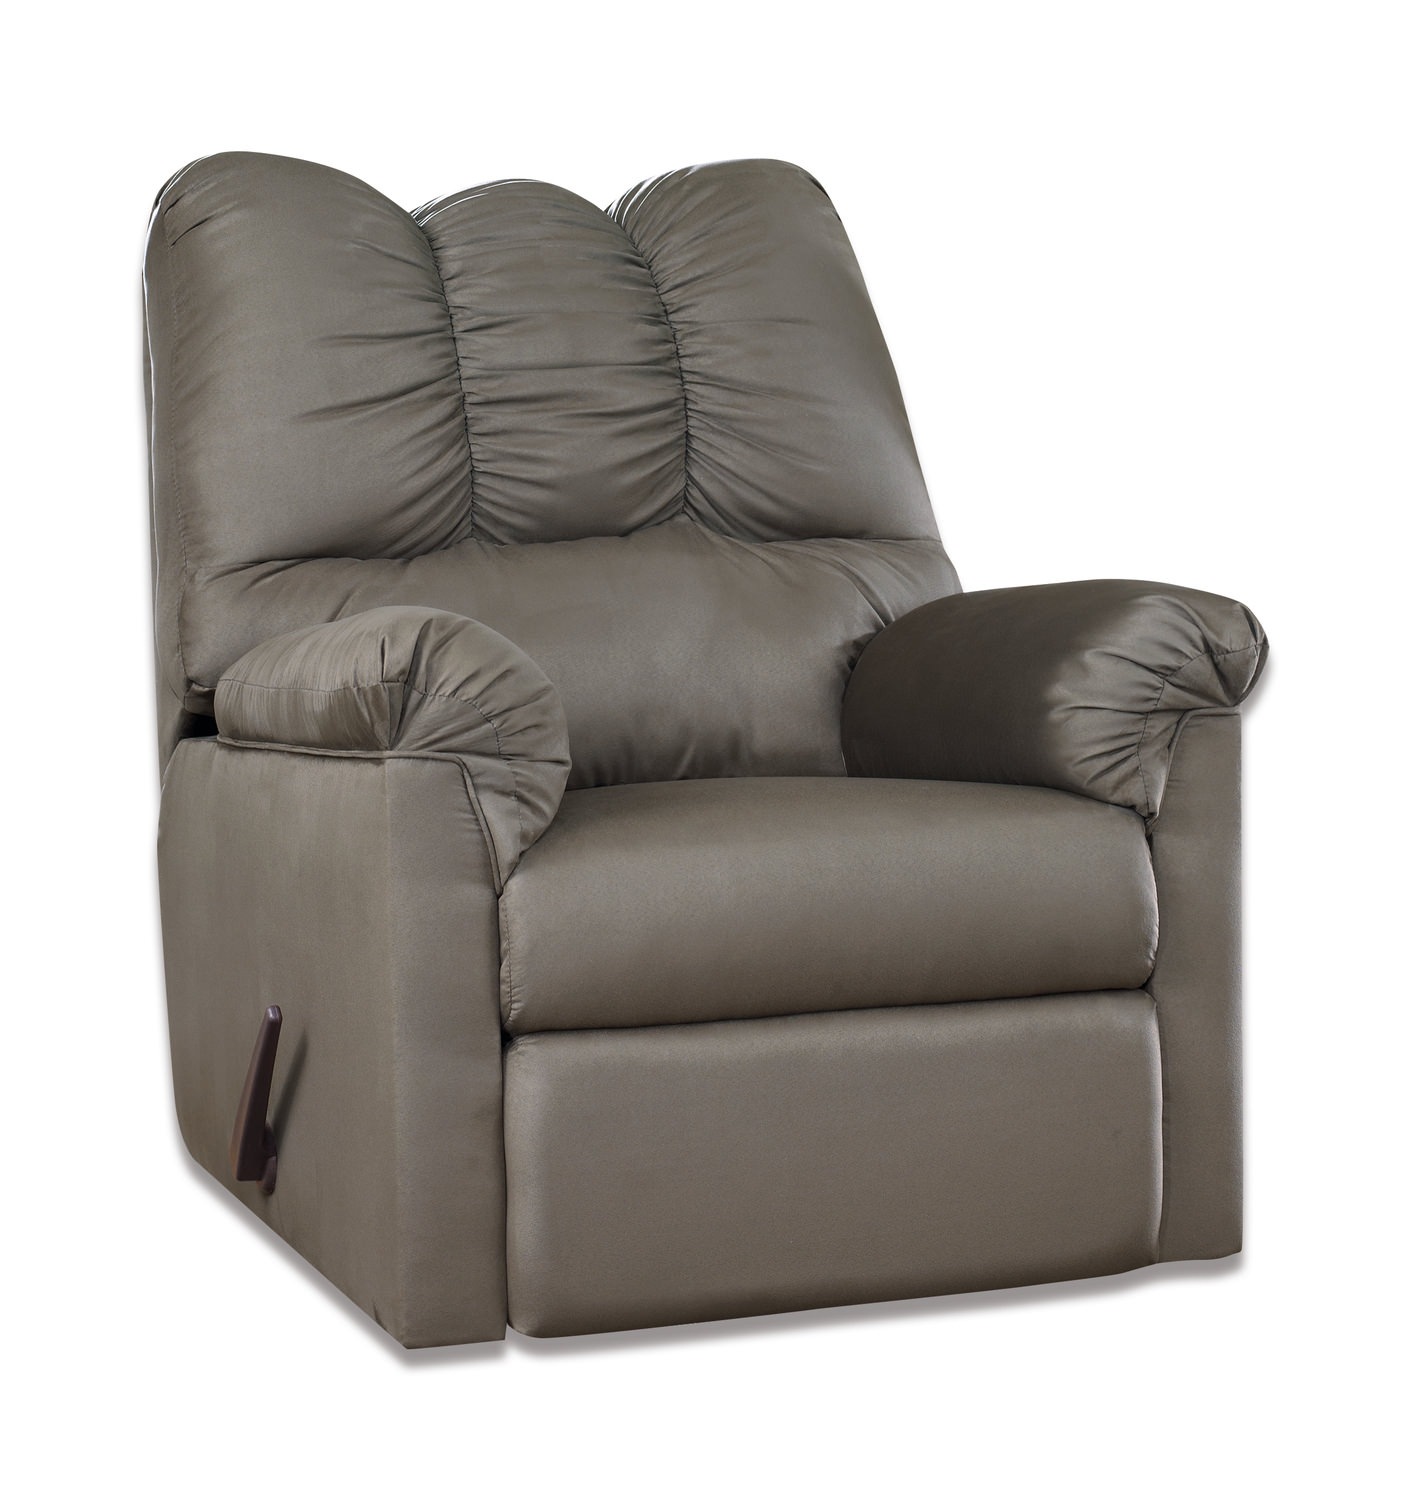 Recliners – Leather, Rocker & Swivel – Hom Furniture With Regard To Theo Ii Swivel Chairs (Image 18 of 25)